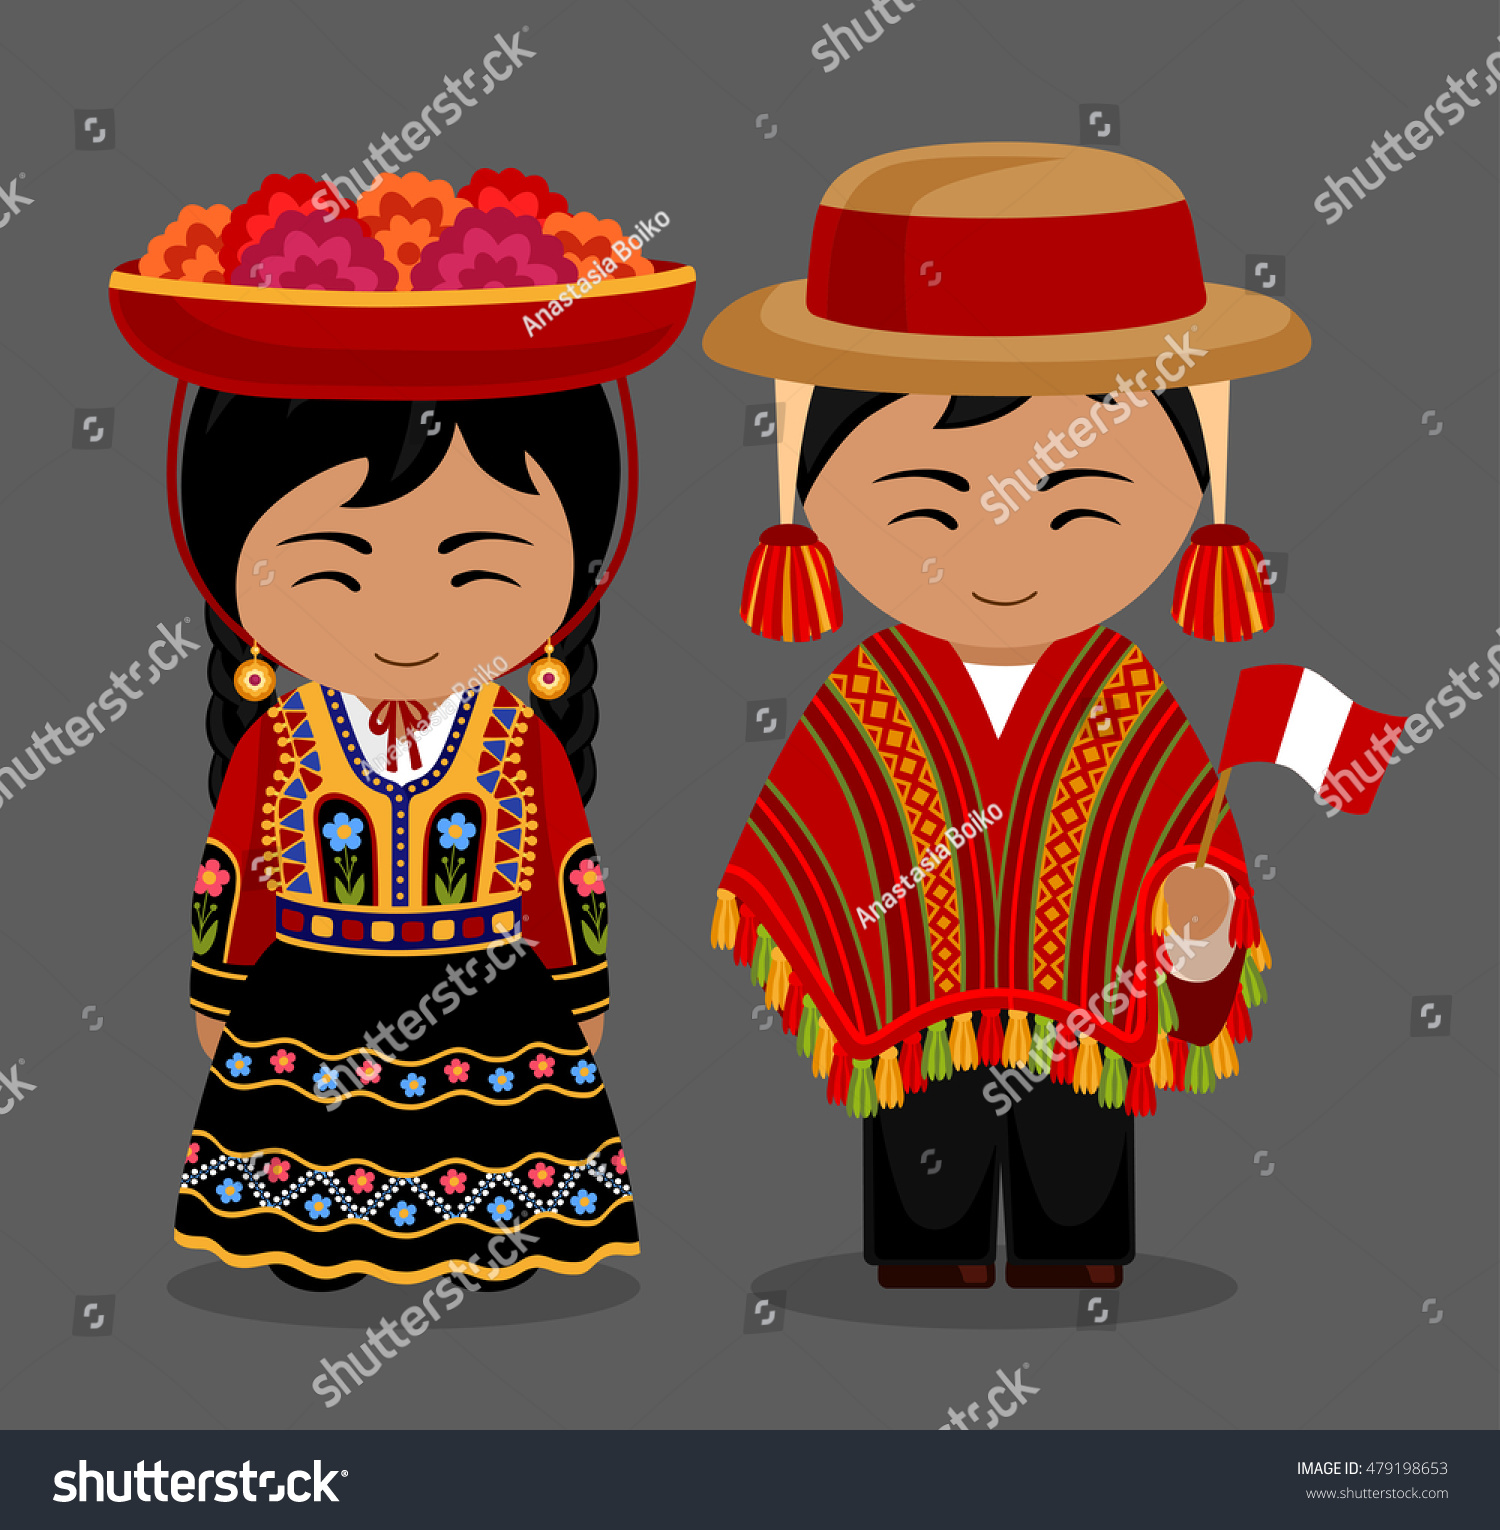 Peru Travel Tips Common Peruvian Phrases For Travel: Peruvian National Dress Man Woman Traditional Stock Vector